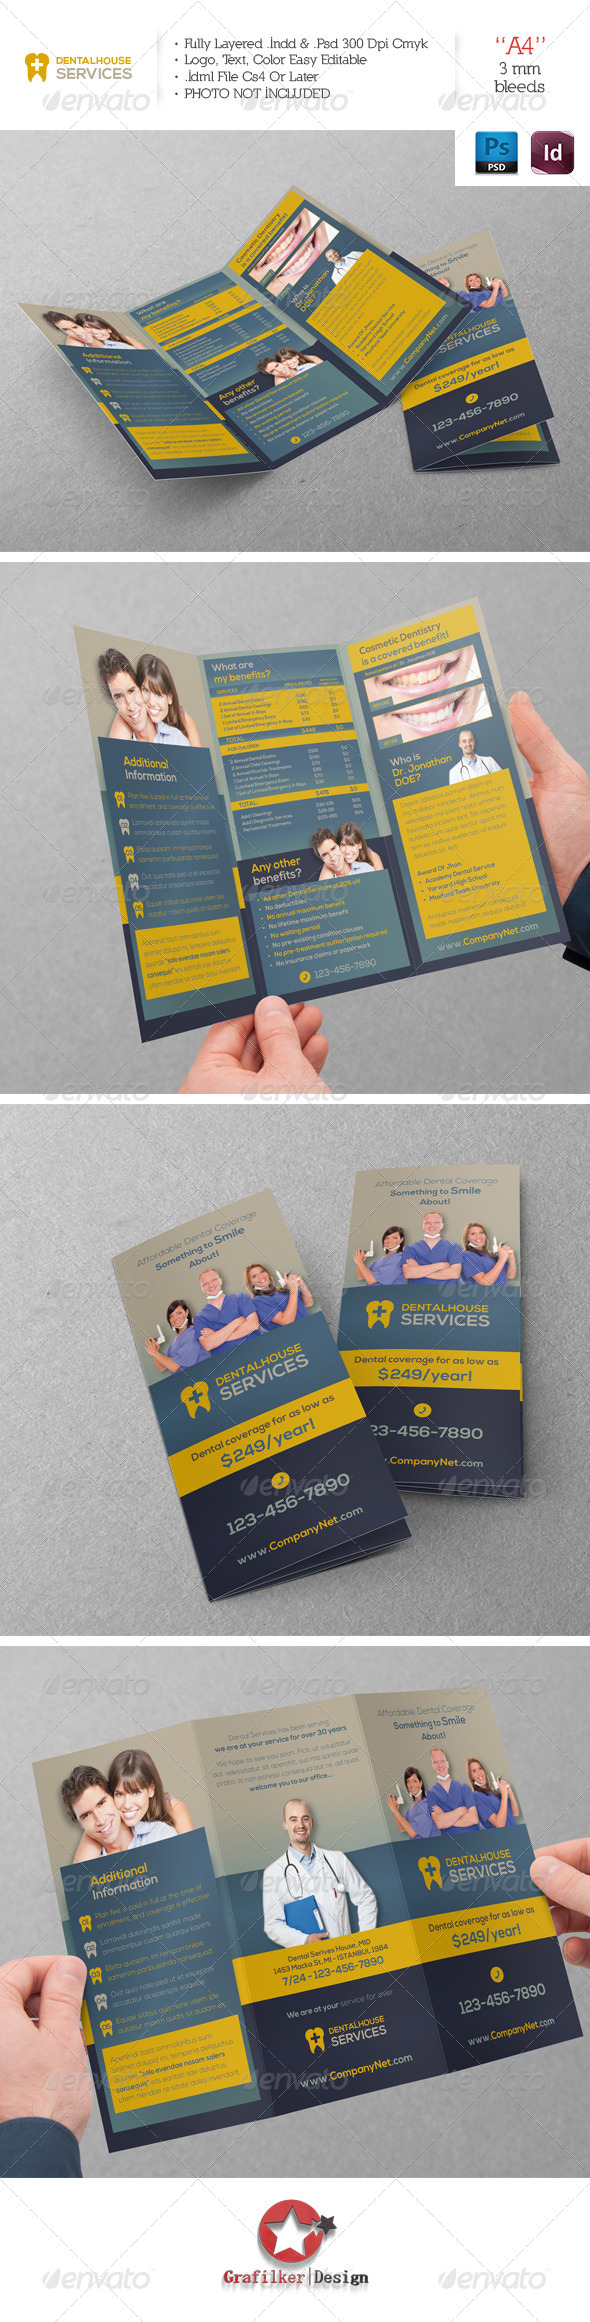 Dental Services Trifold Template - Brochures Print Templates